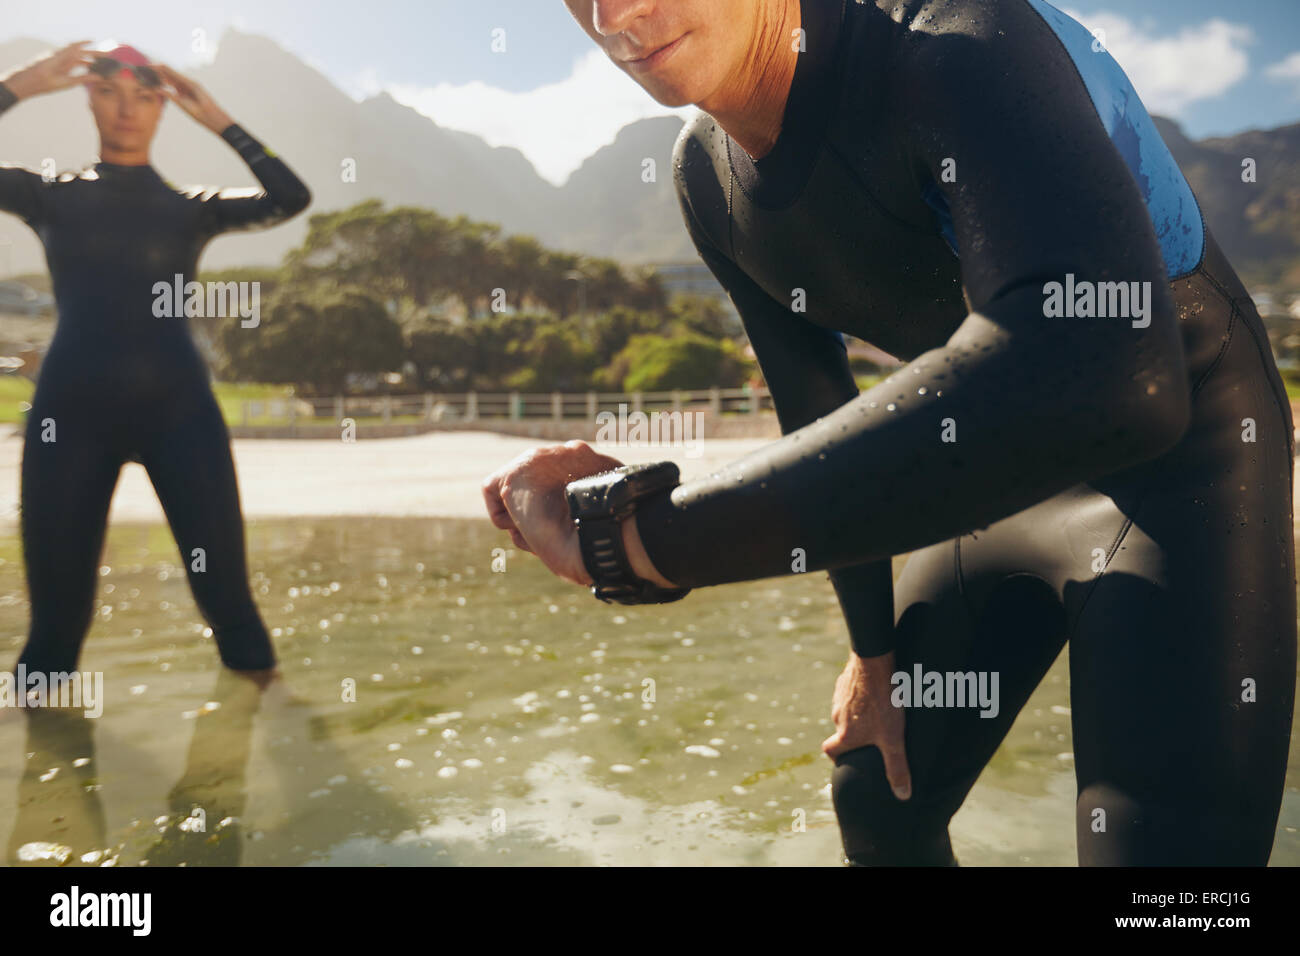 Man checking his timer. Athletes in wet suits preparing for triathlon competition. - Stock Image